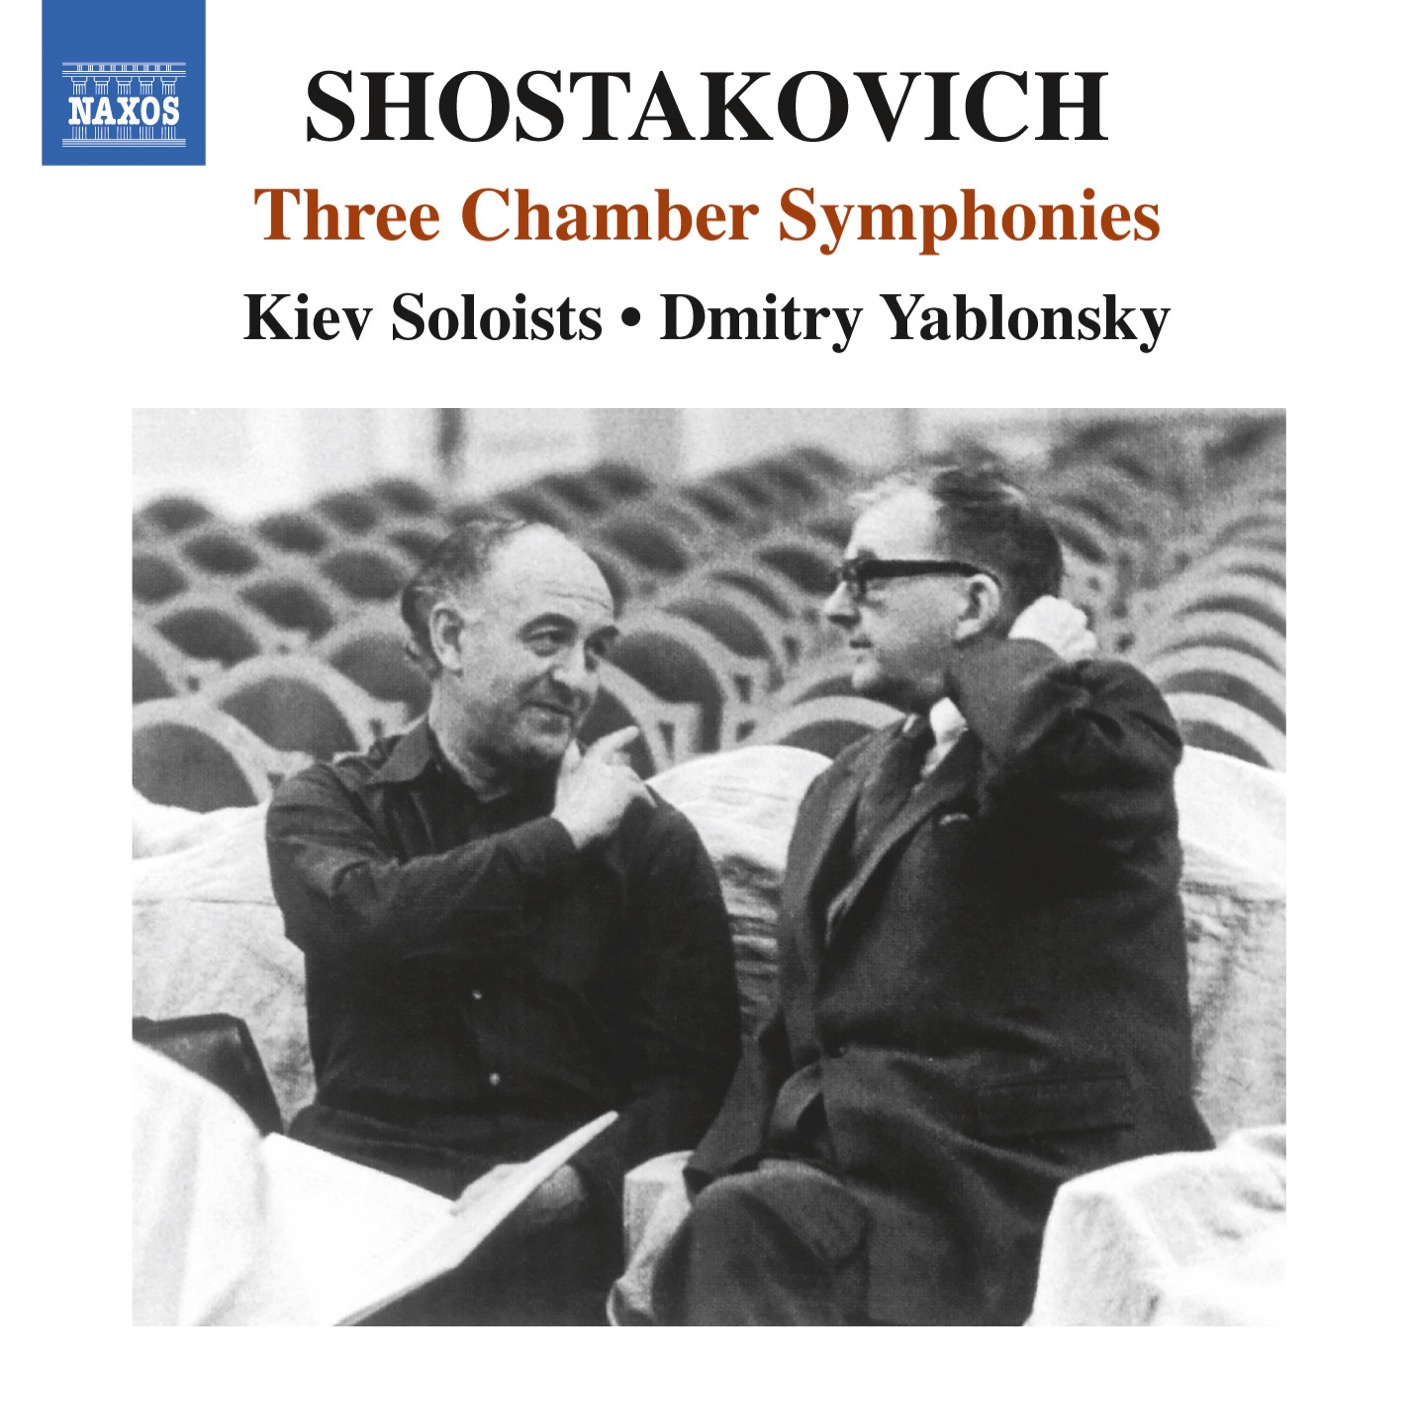 shostakovich tradition and dissent The arts past and present tradition and dissent you'll listen to the string quartets of the controversial soviet composer dmitri shostakovich.